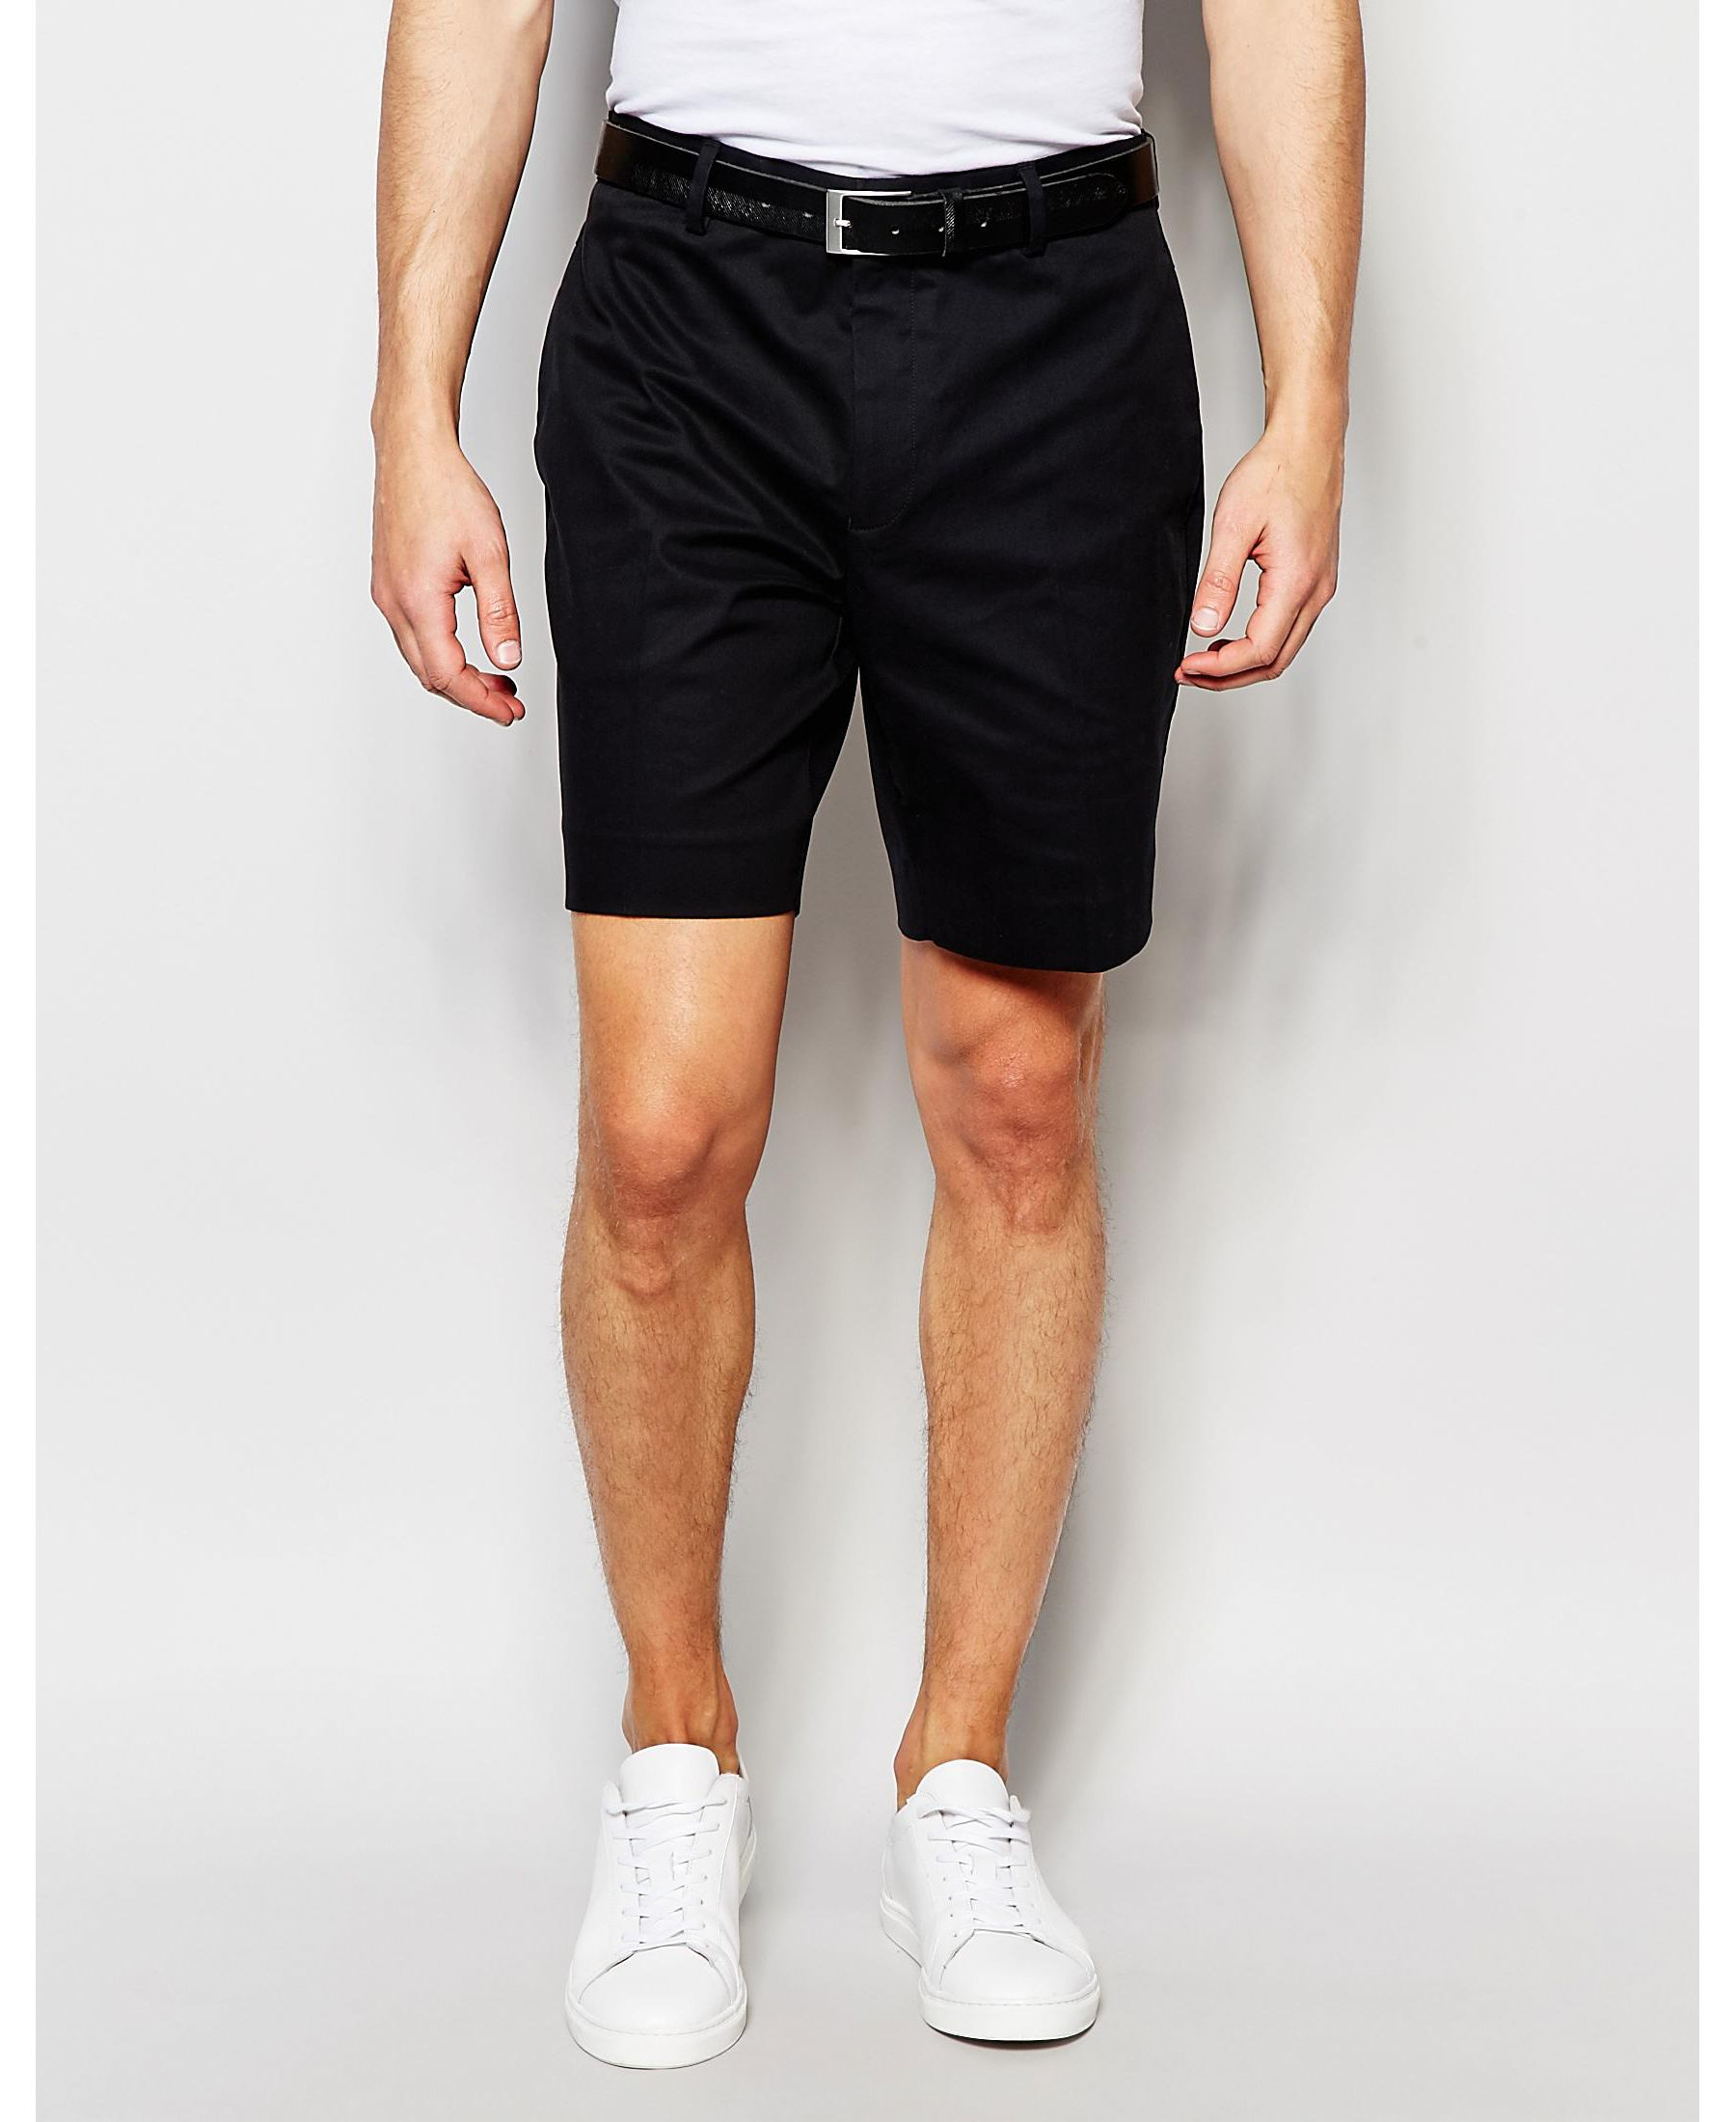 Shop Target for Chino shorts Shorts you will love at great low prices. Spend $35+ or use your REDcard & get free 2-day shipping on most items or same-day pick-up in store.